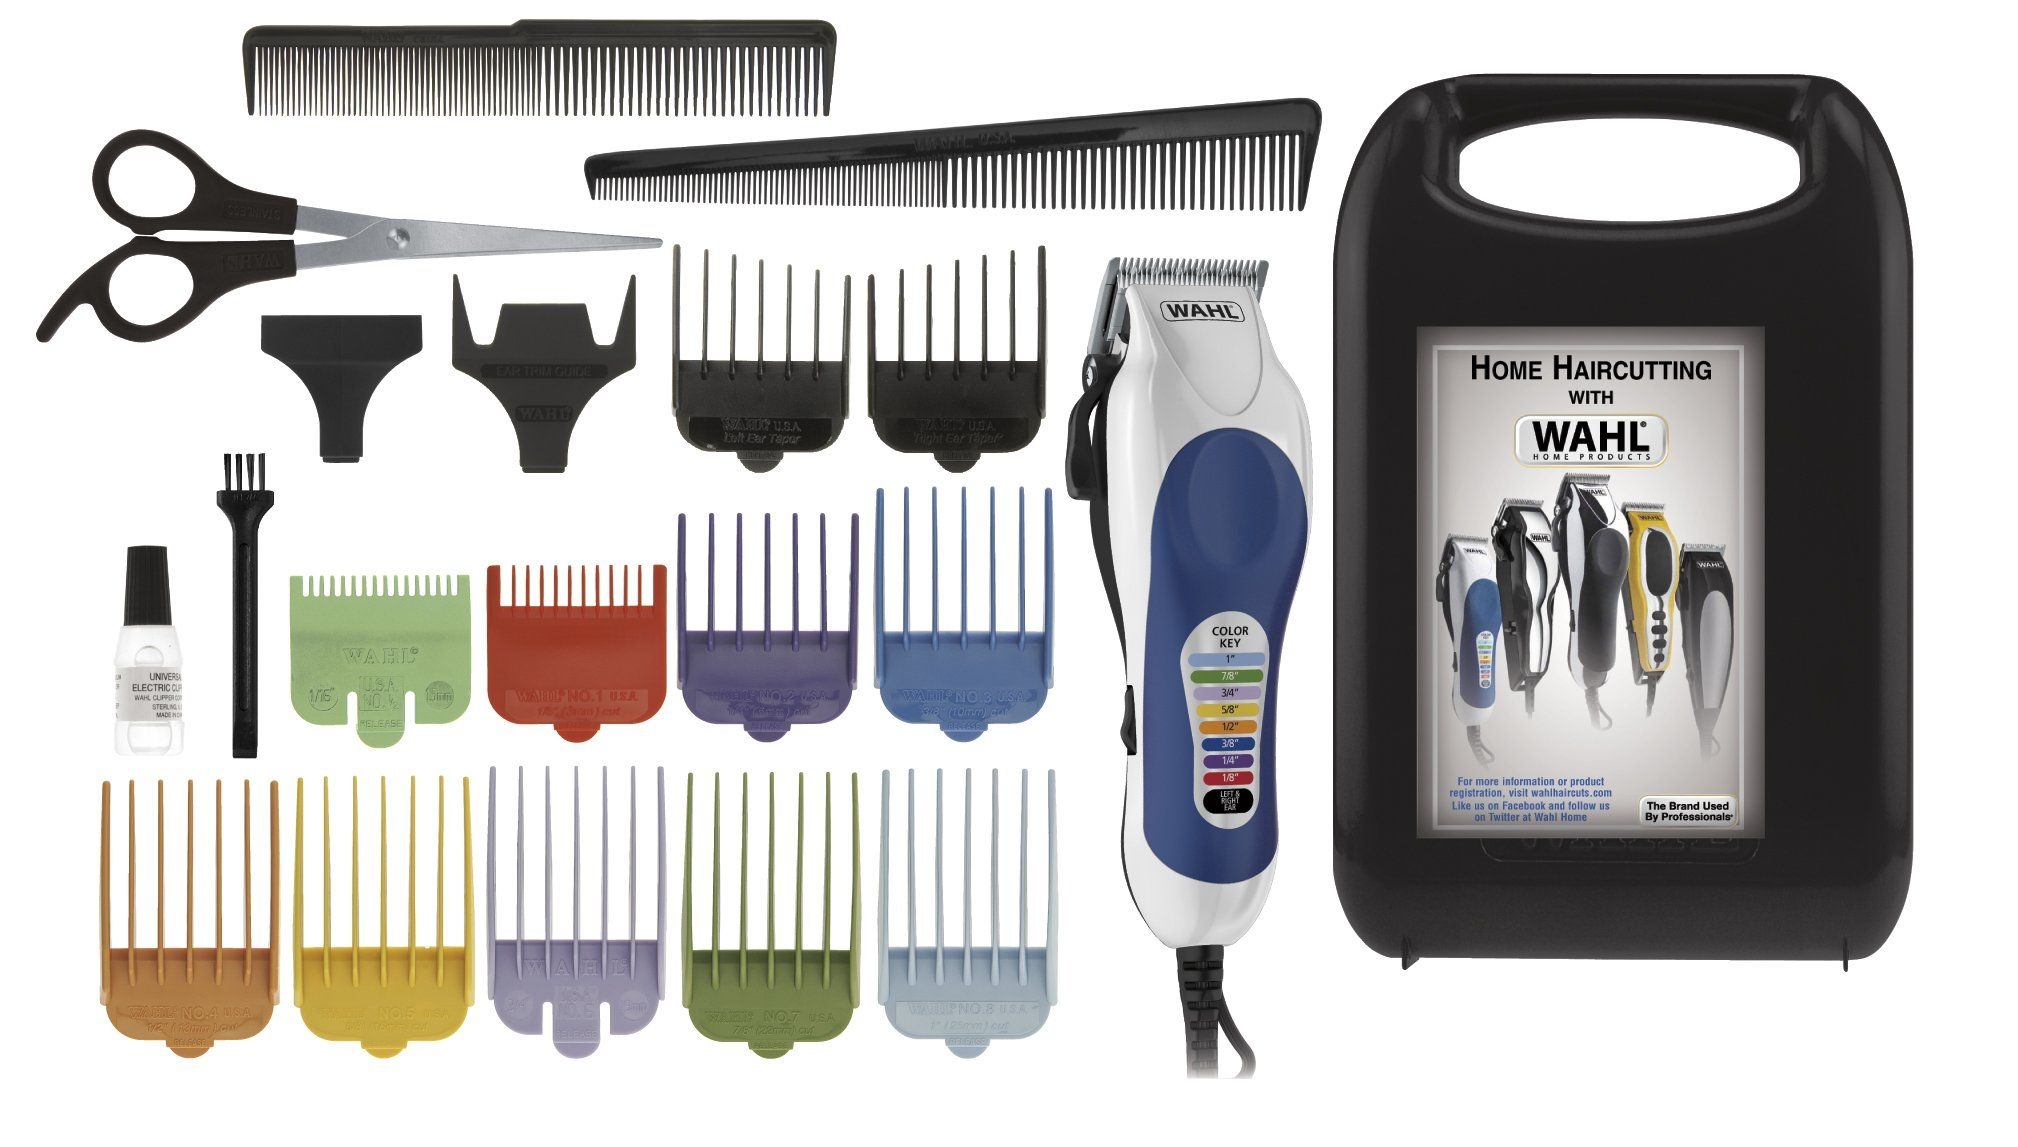 Wahl Color Pro 20 Piece Haircutting Kit Only 17 99 Hair Clippers Hair Trimmer Hair Removal Machine